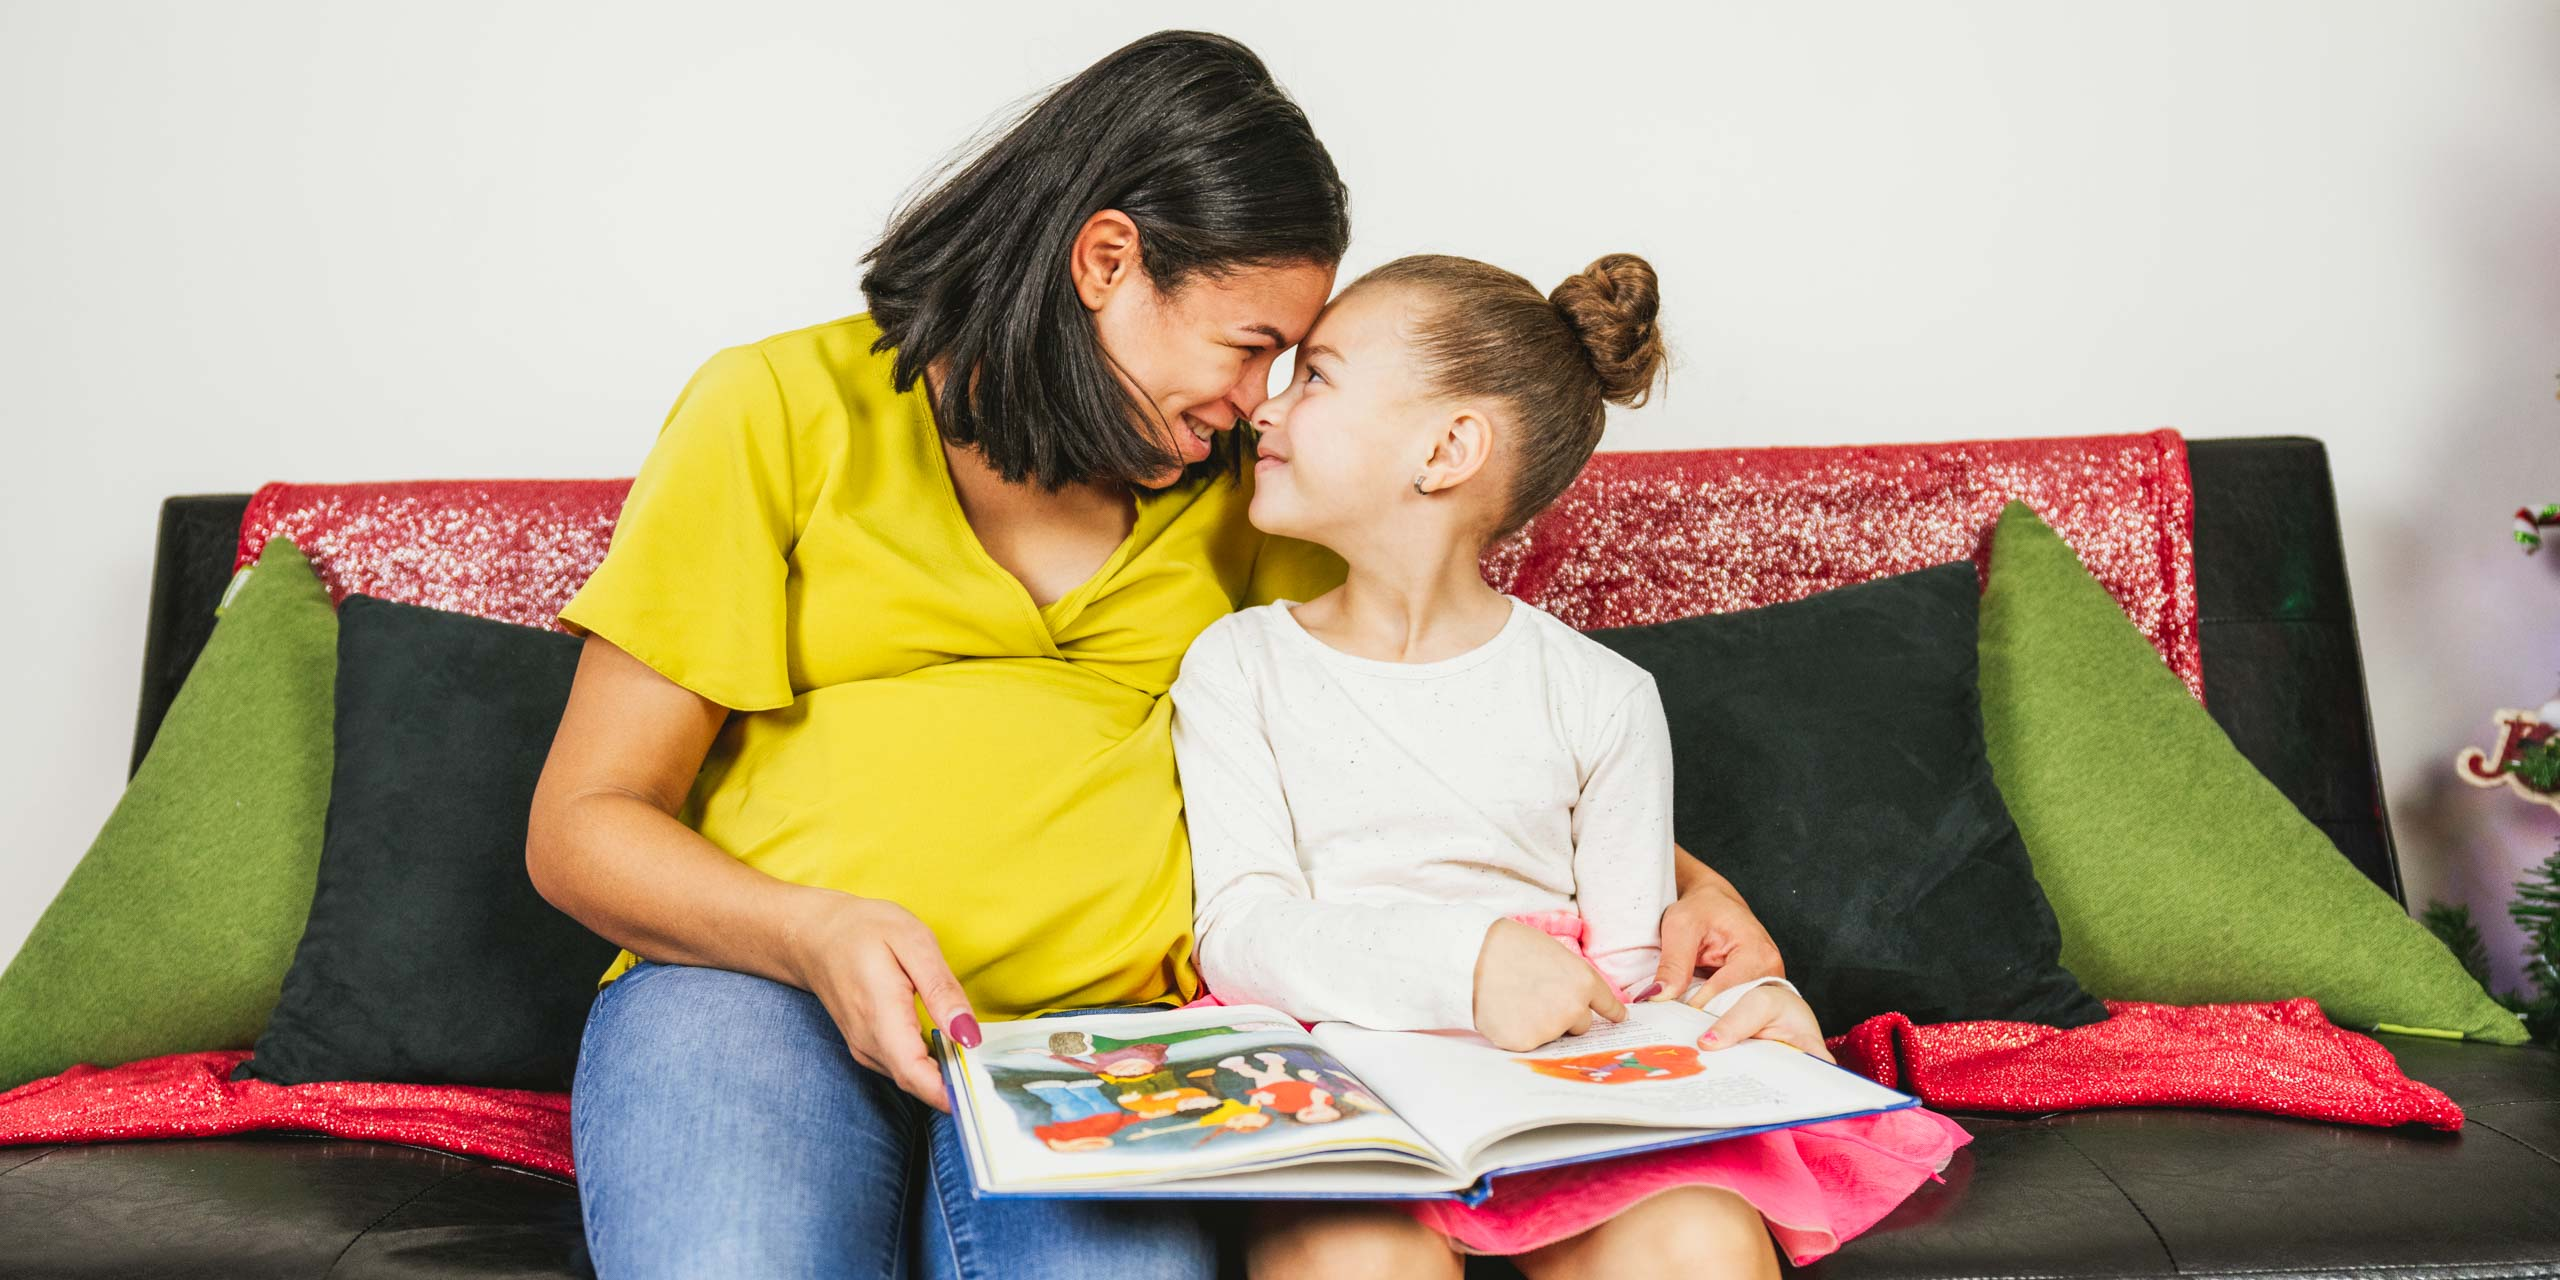 Woman and young girl touch foreheads while reading book